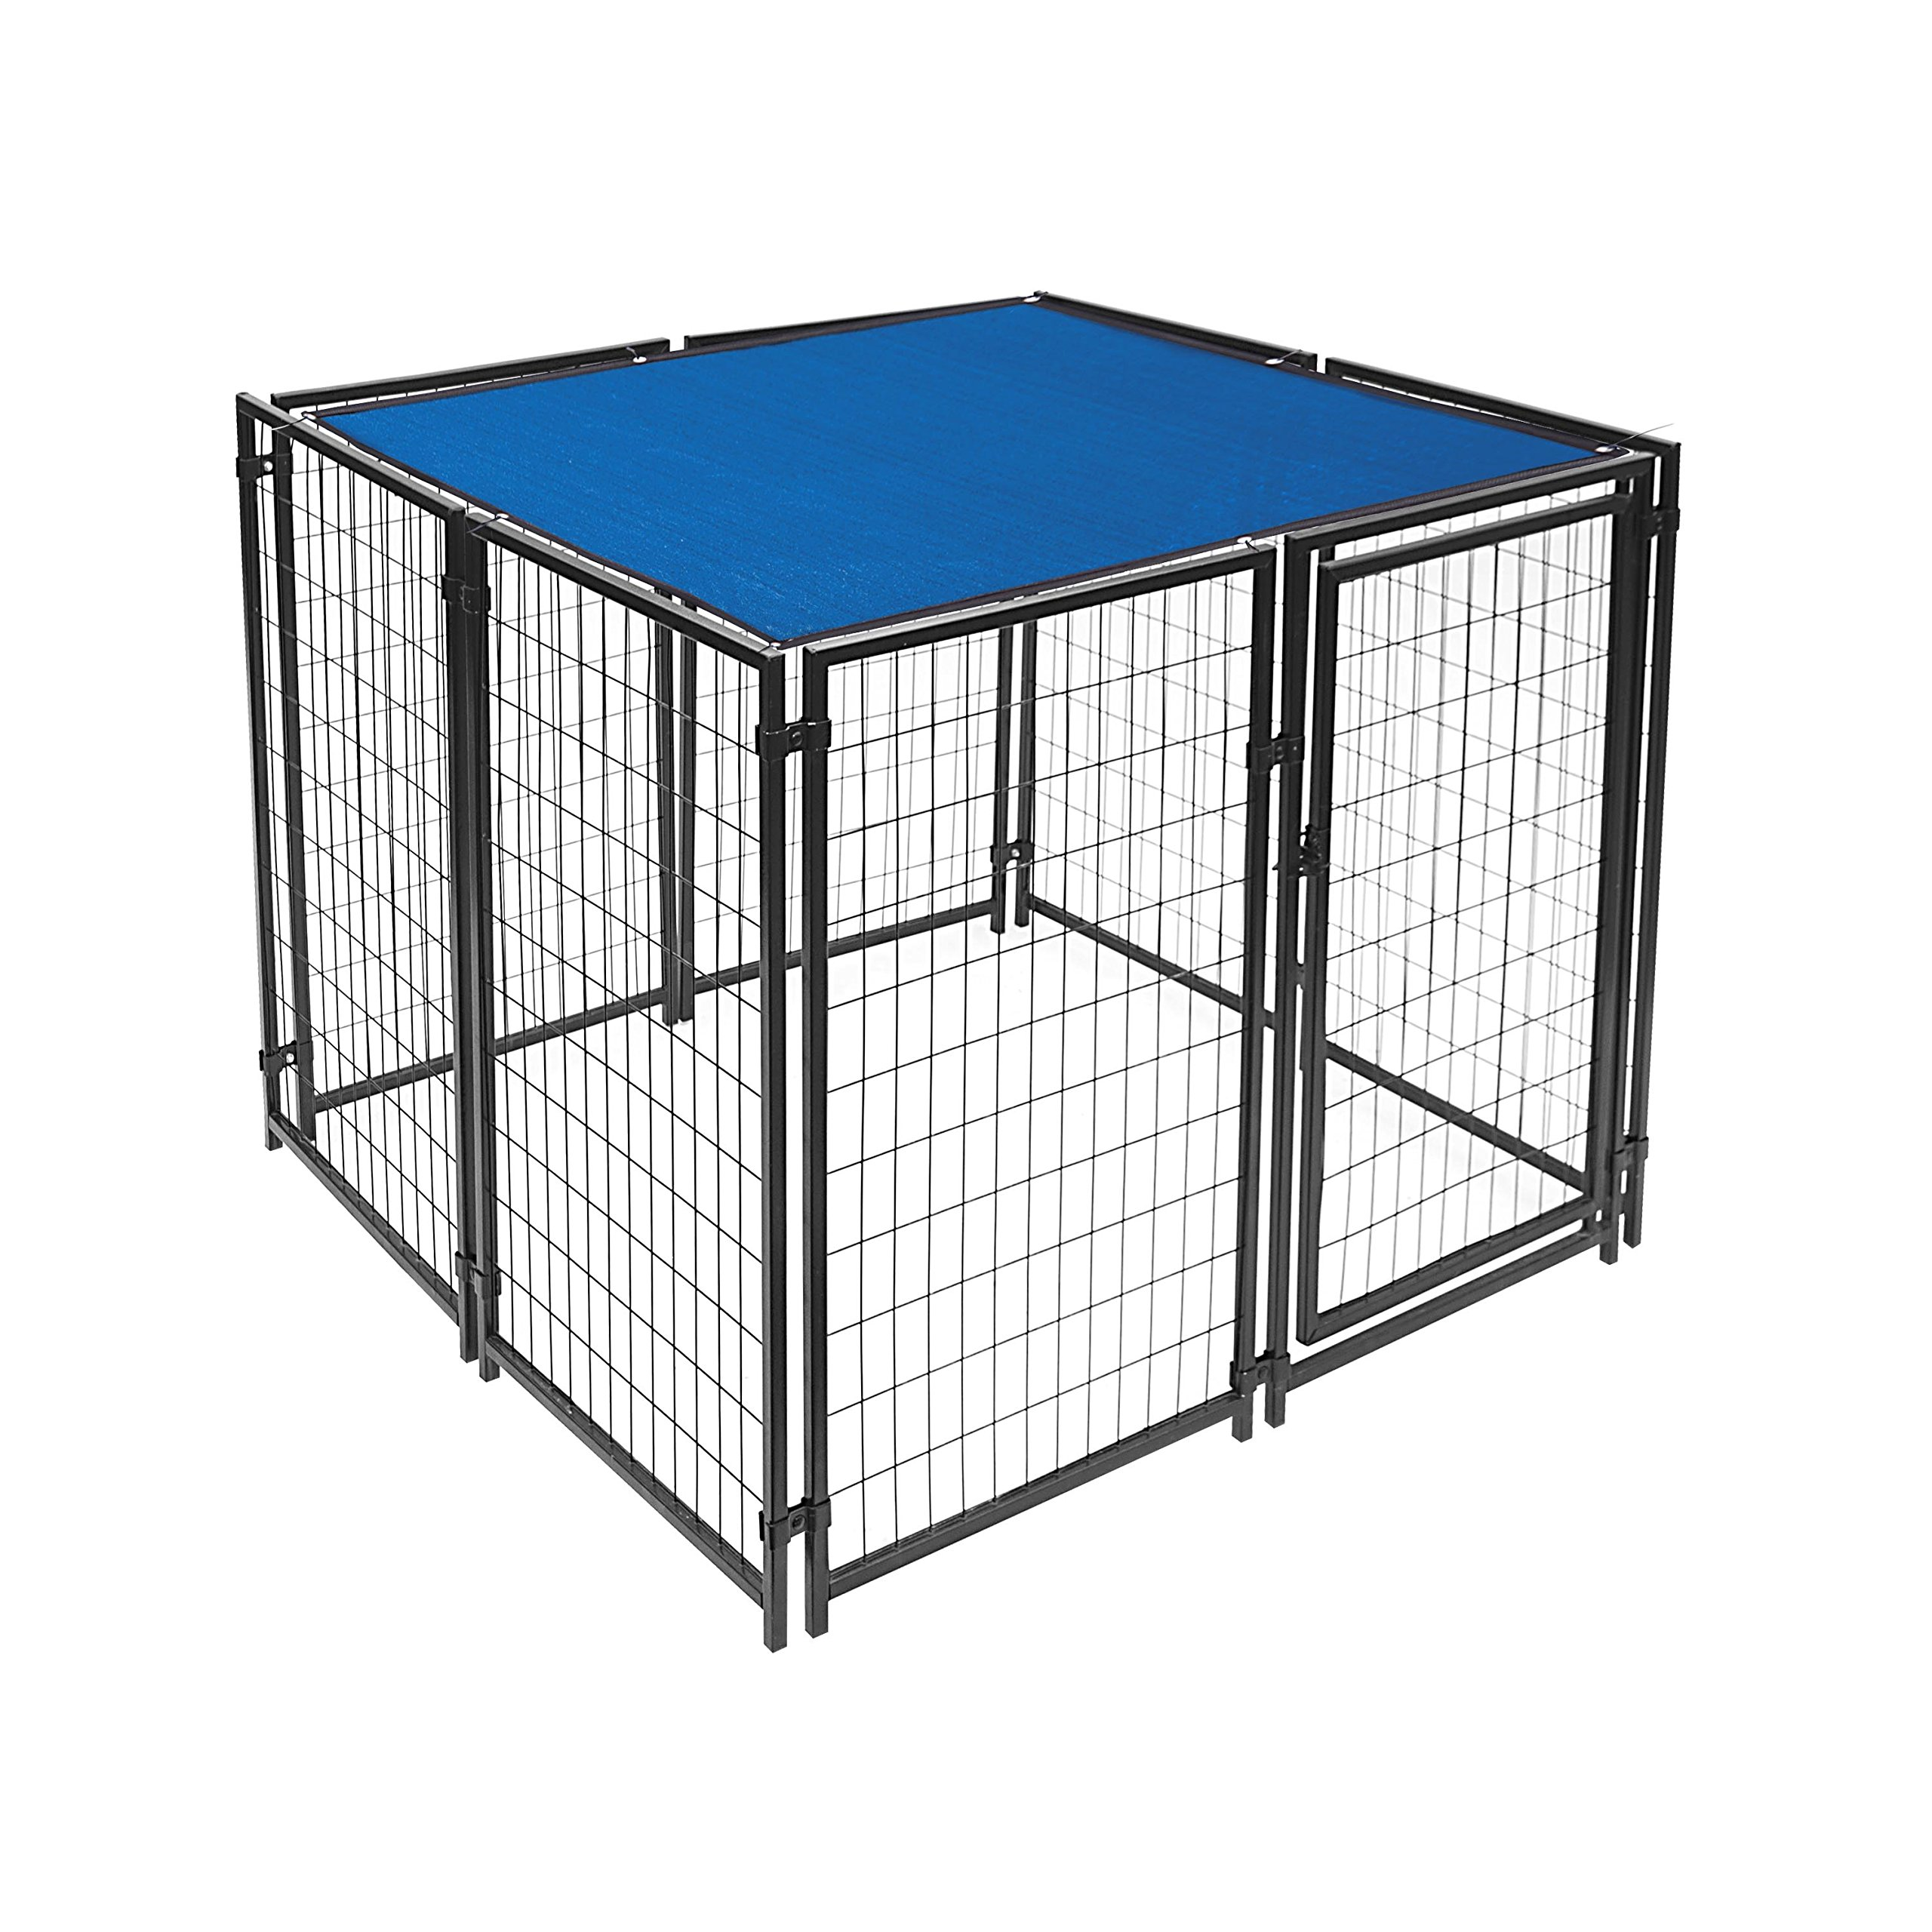 ALEKO PLK0515BL Feet Pet Dog Kennel Sun Shade Cover Weather Protection with Aluminum Grommets 5 x 15 Feet Blue